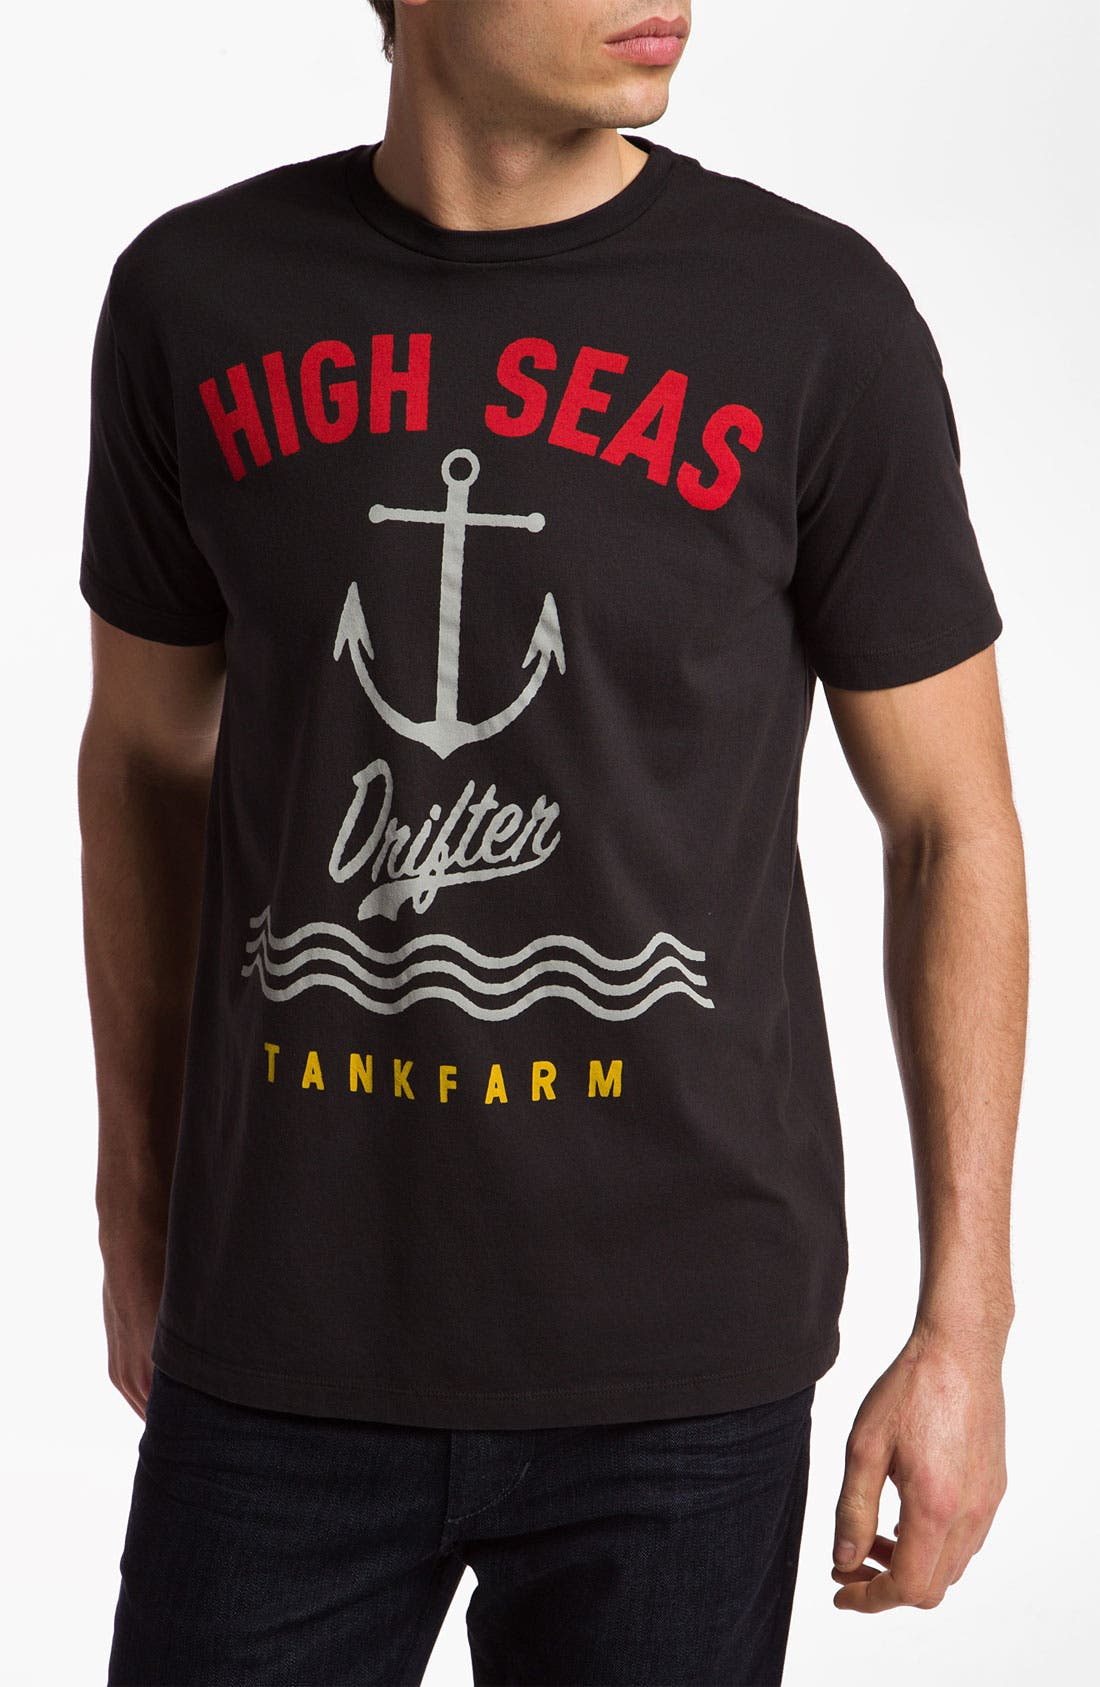 Main Image - Tankfarm 'High Seas Drifter' Graphic T-Shirt